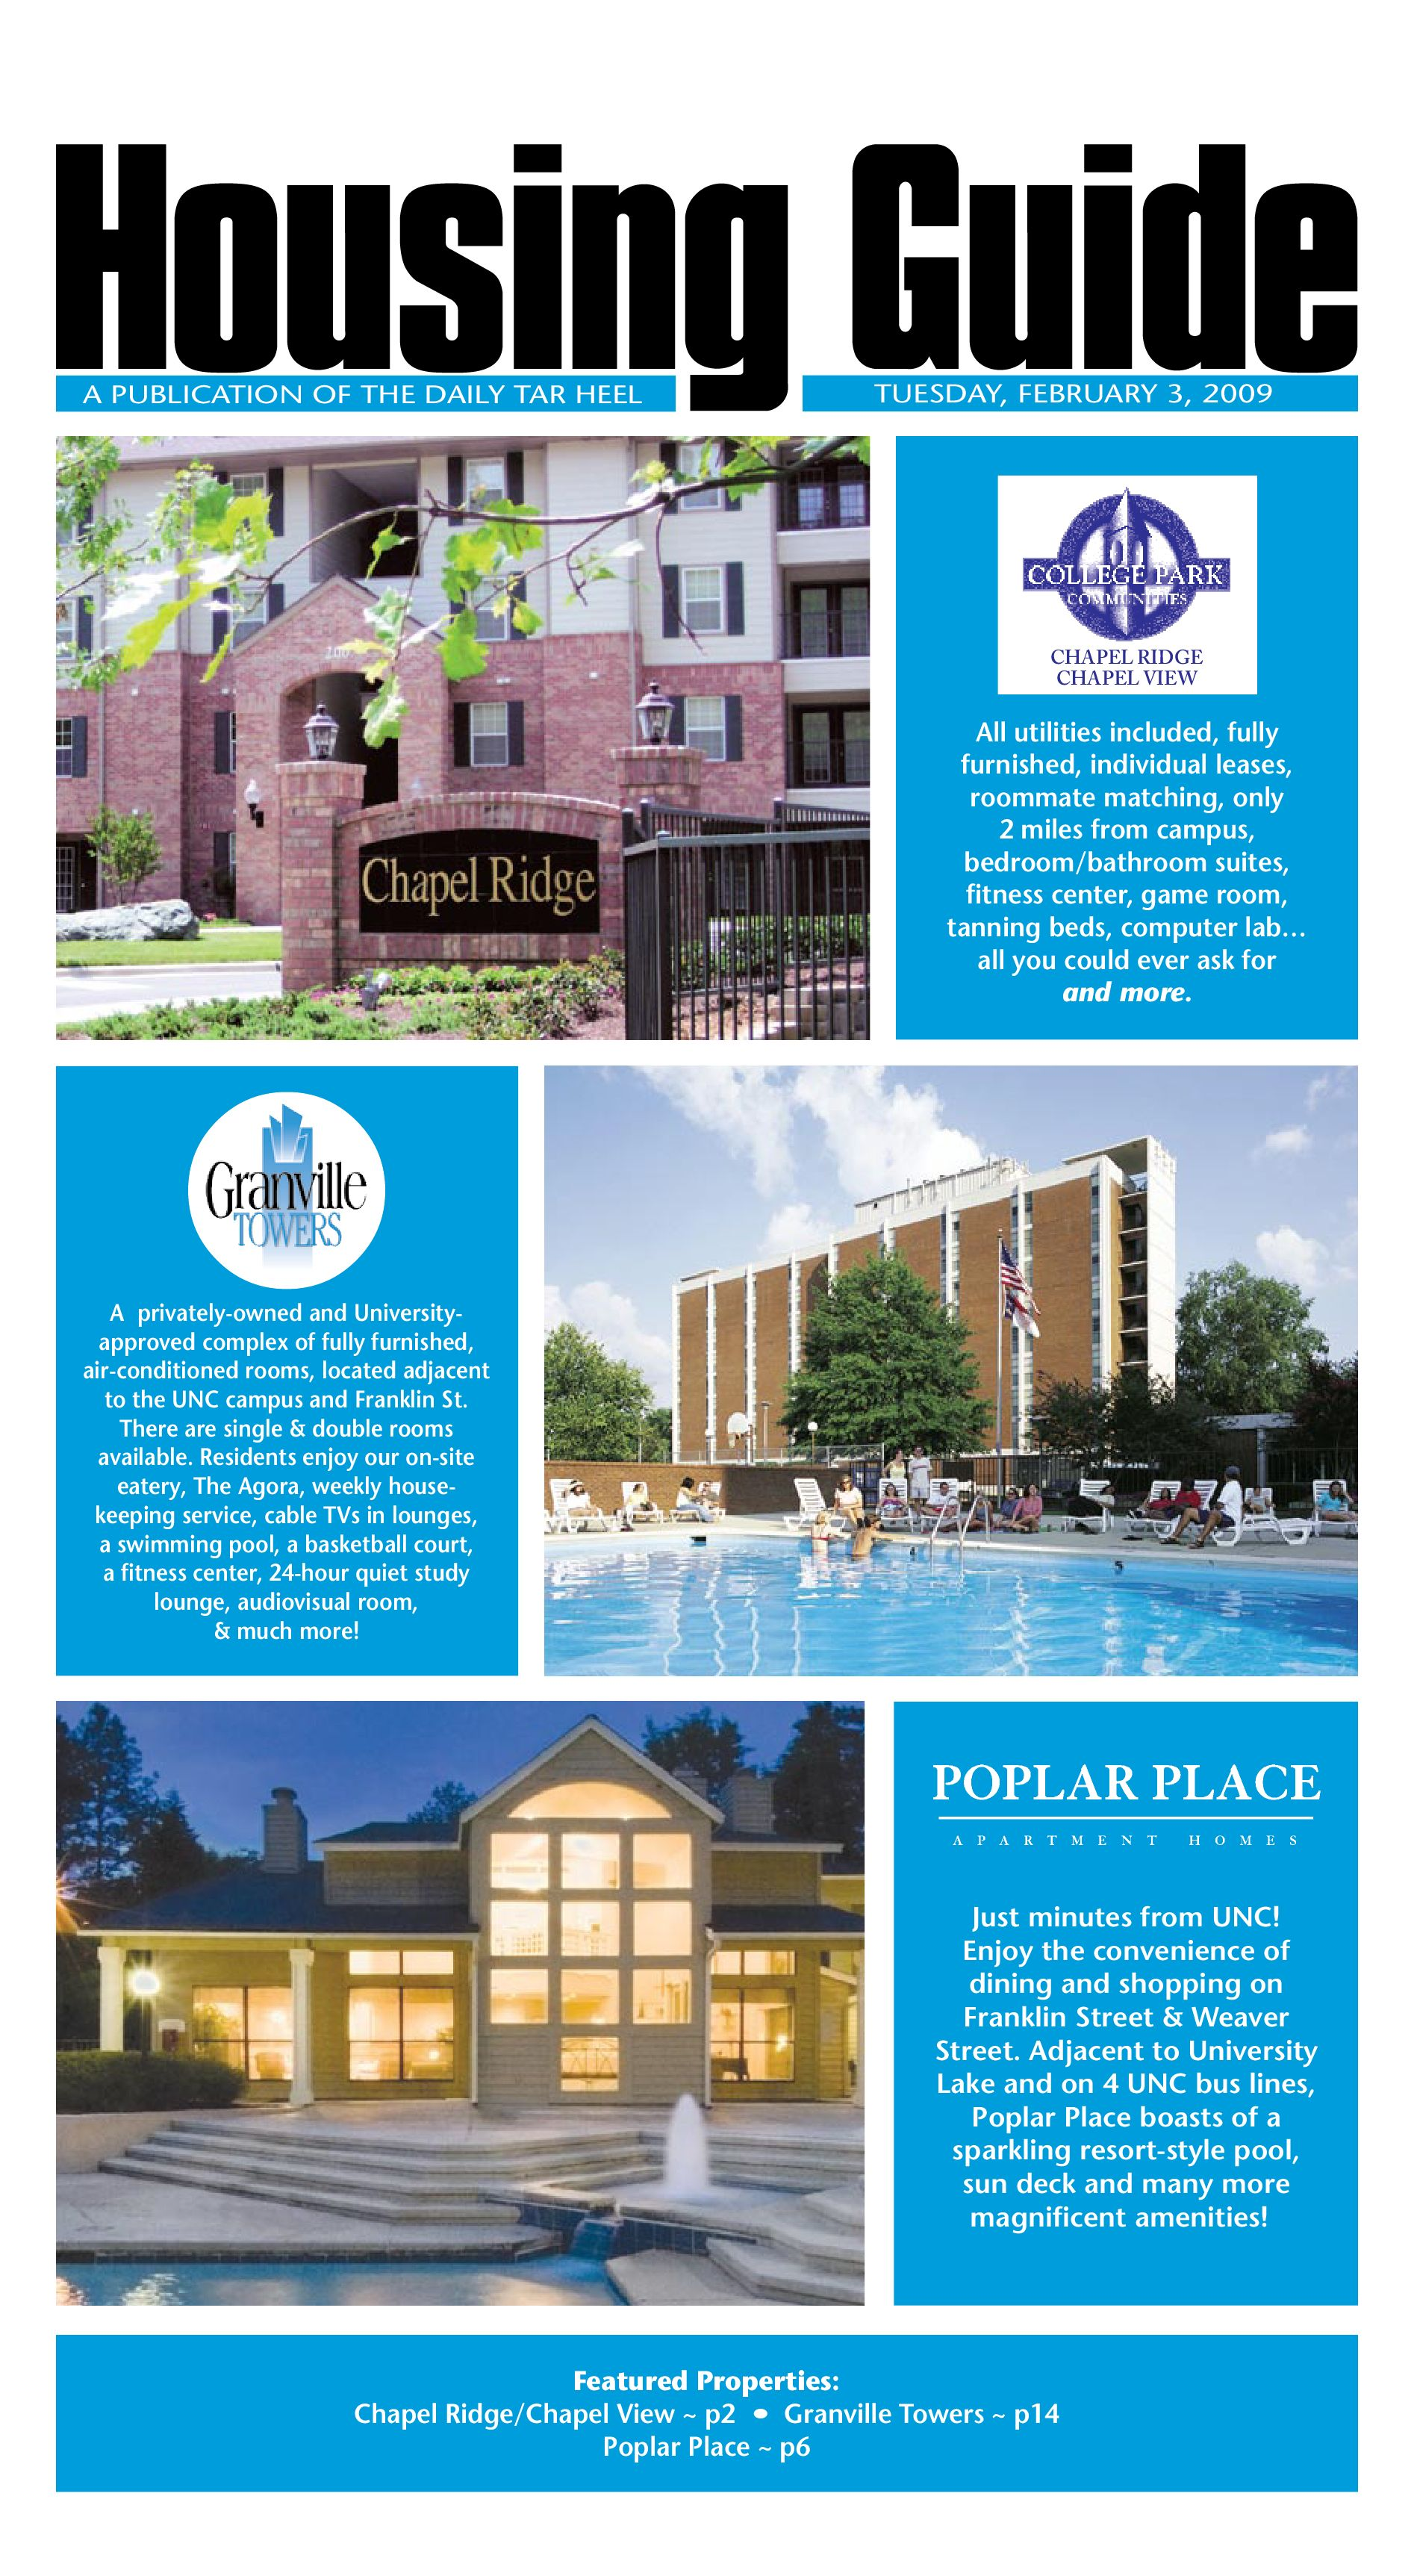 the daily tar heel housing guide, 2009 by the daily tar heel - issuu